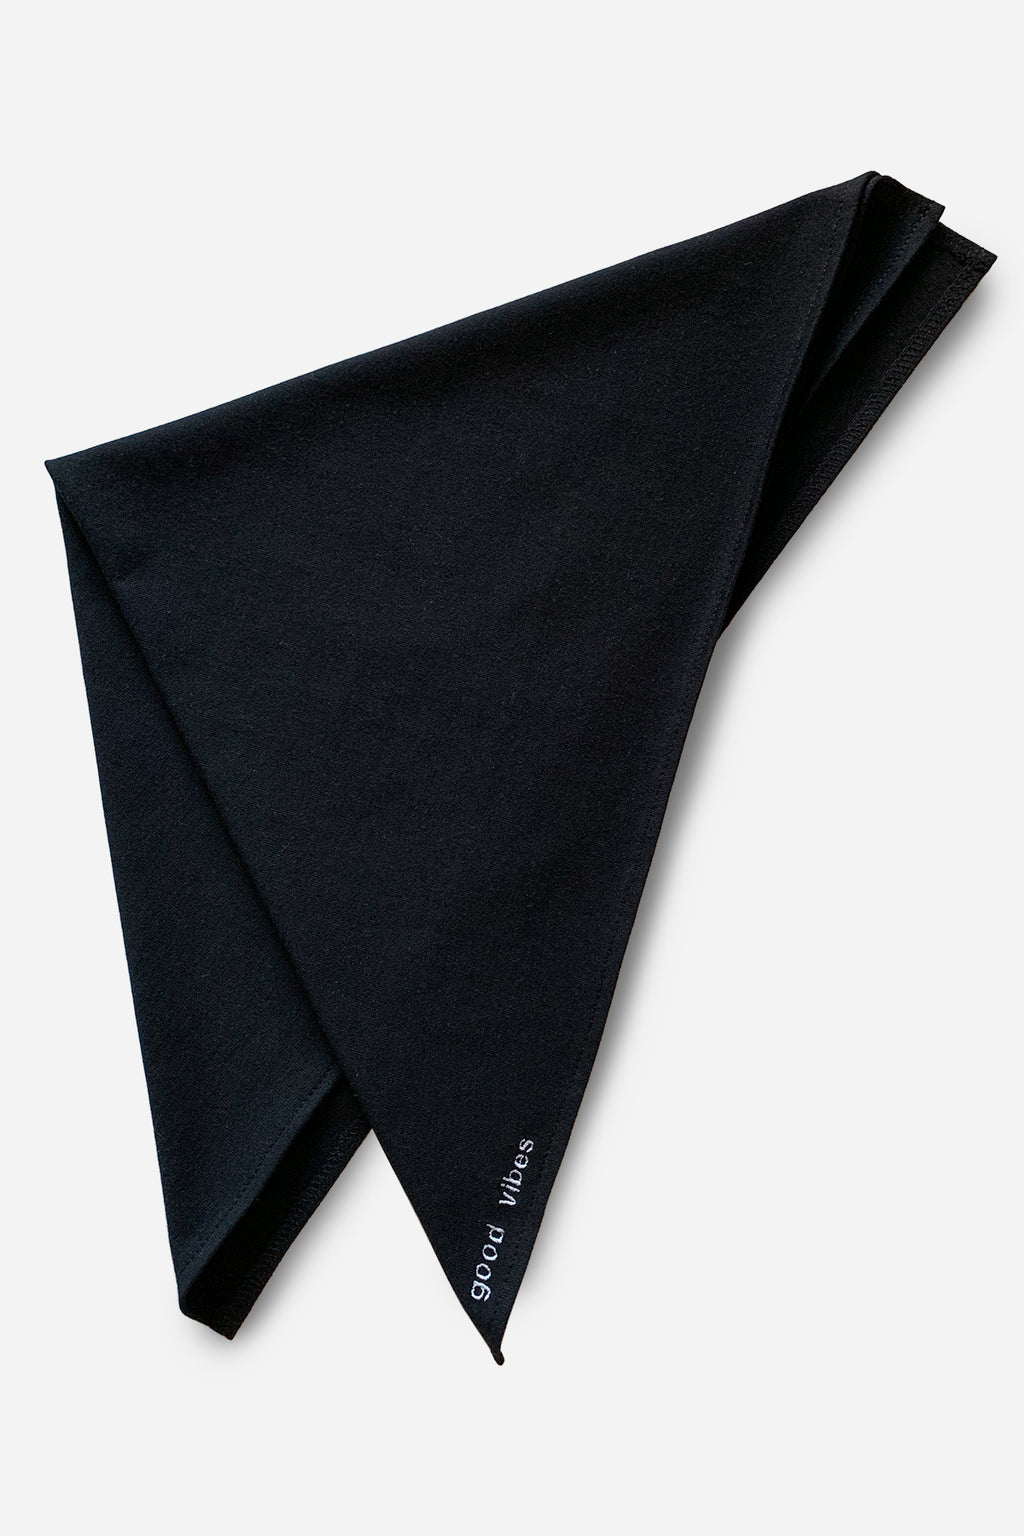 337 BRAND Women's Sustainable Accessories Hudson Bandana